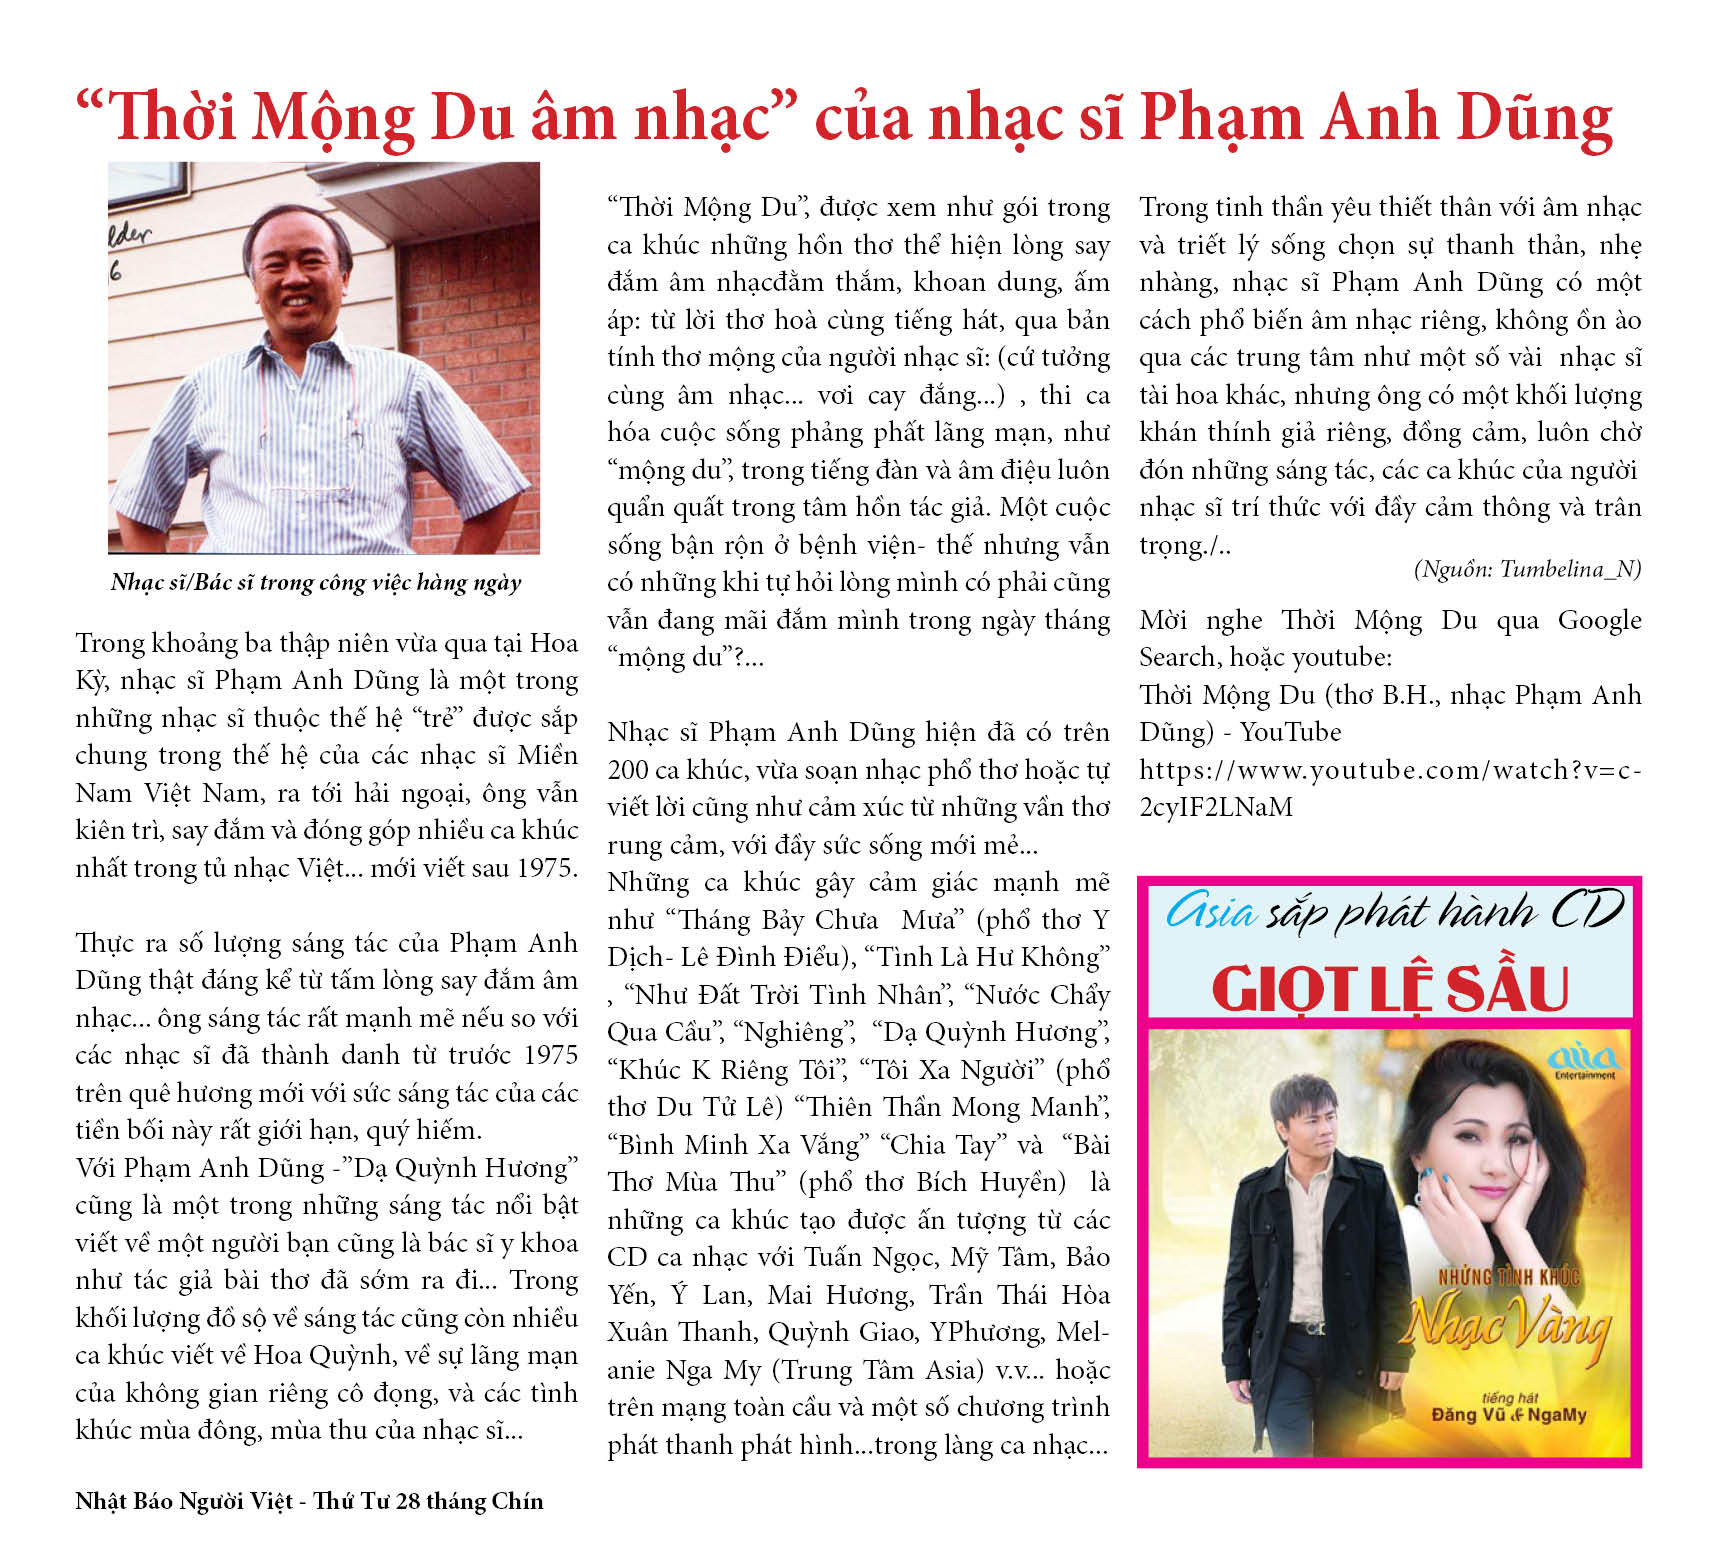 pham-anh-dung